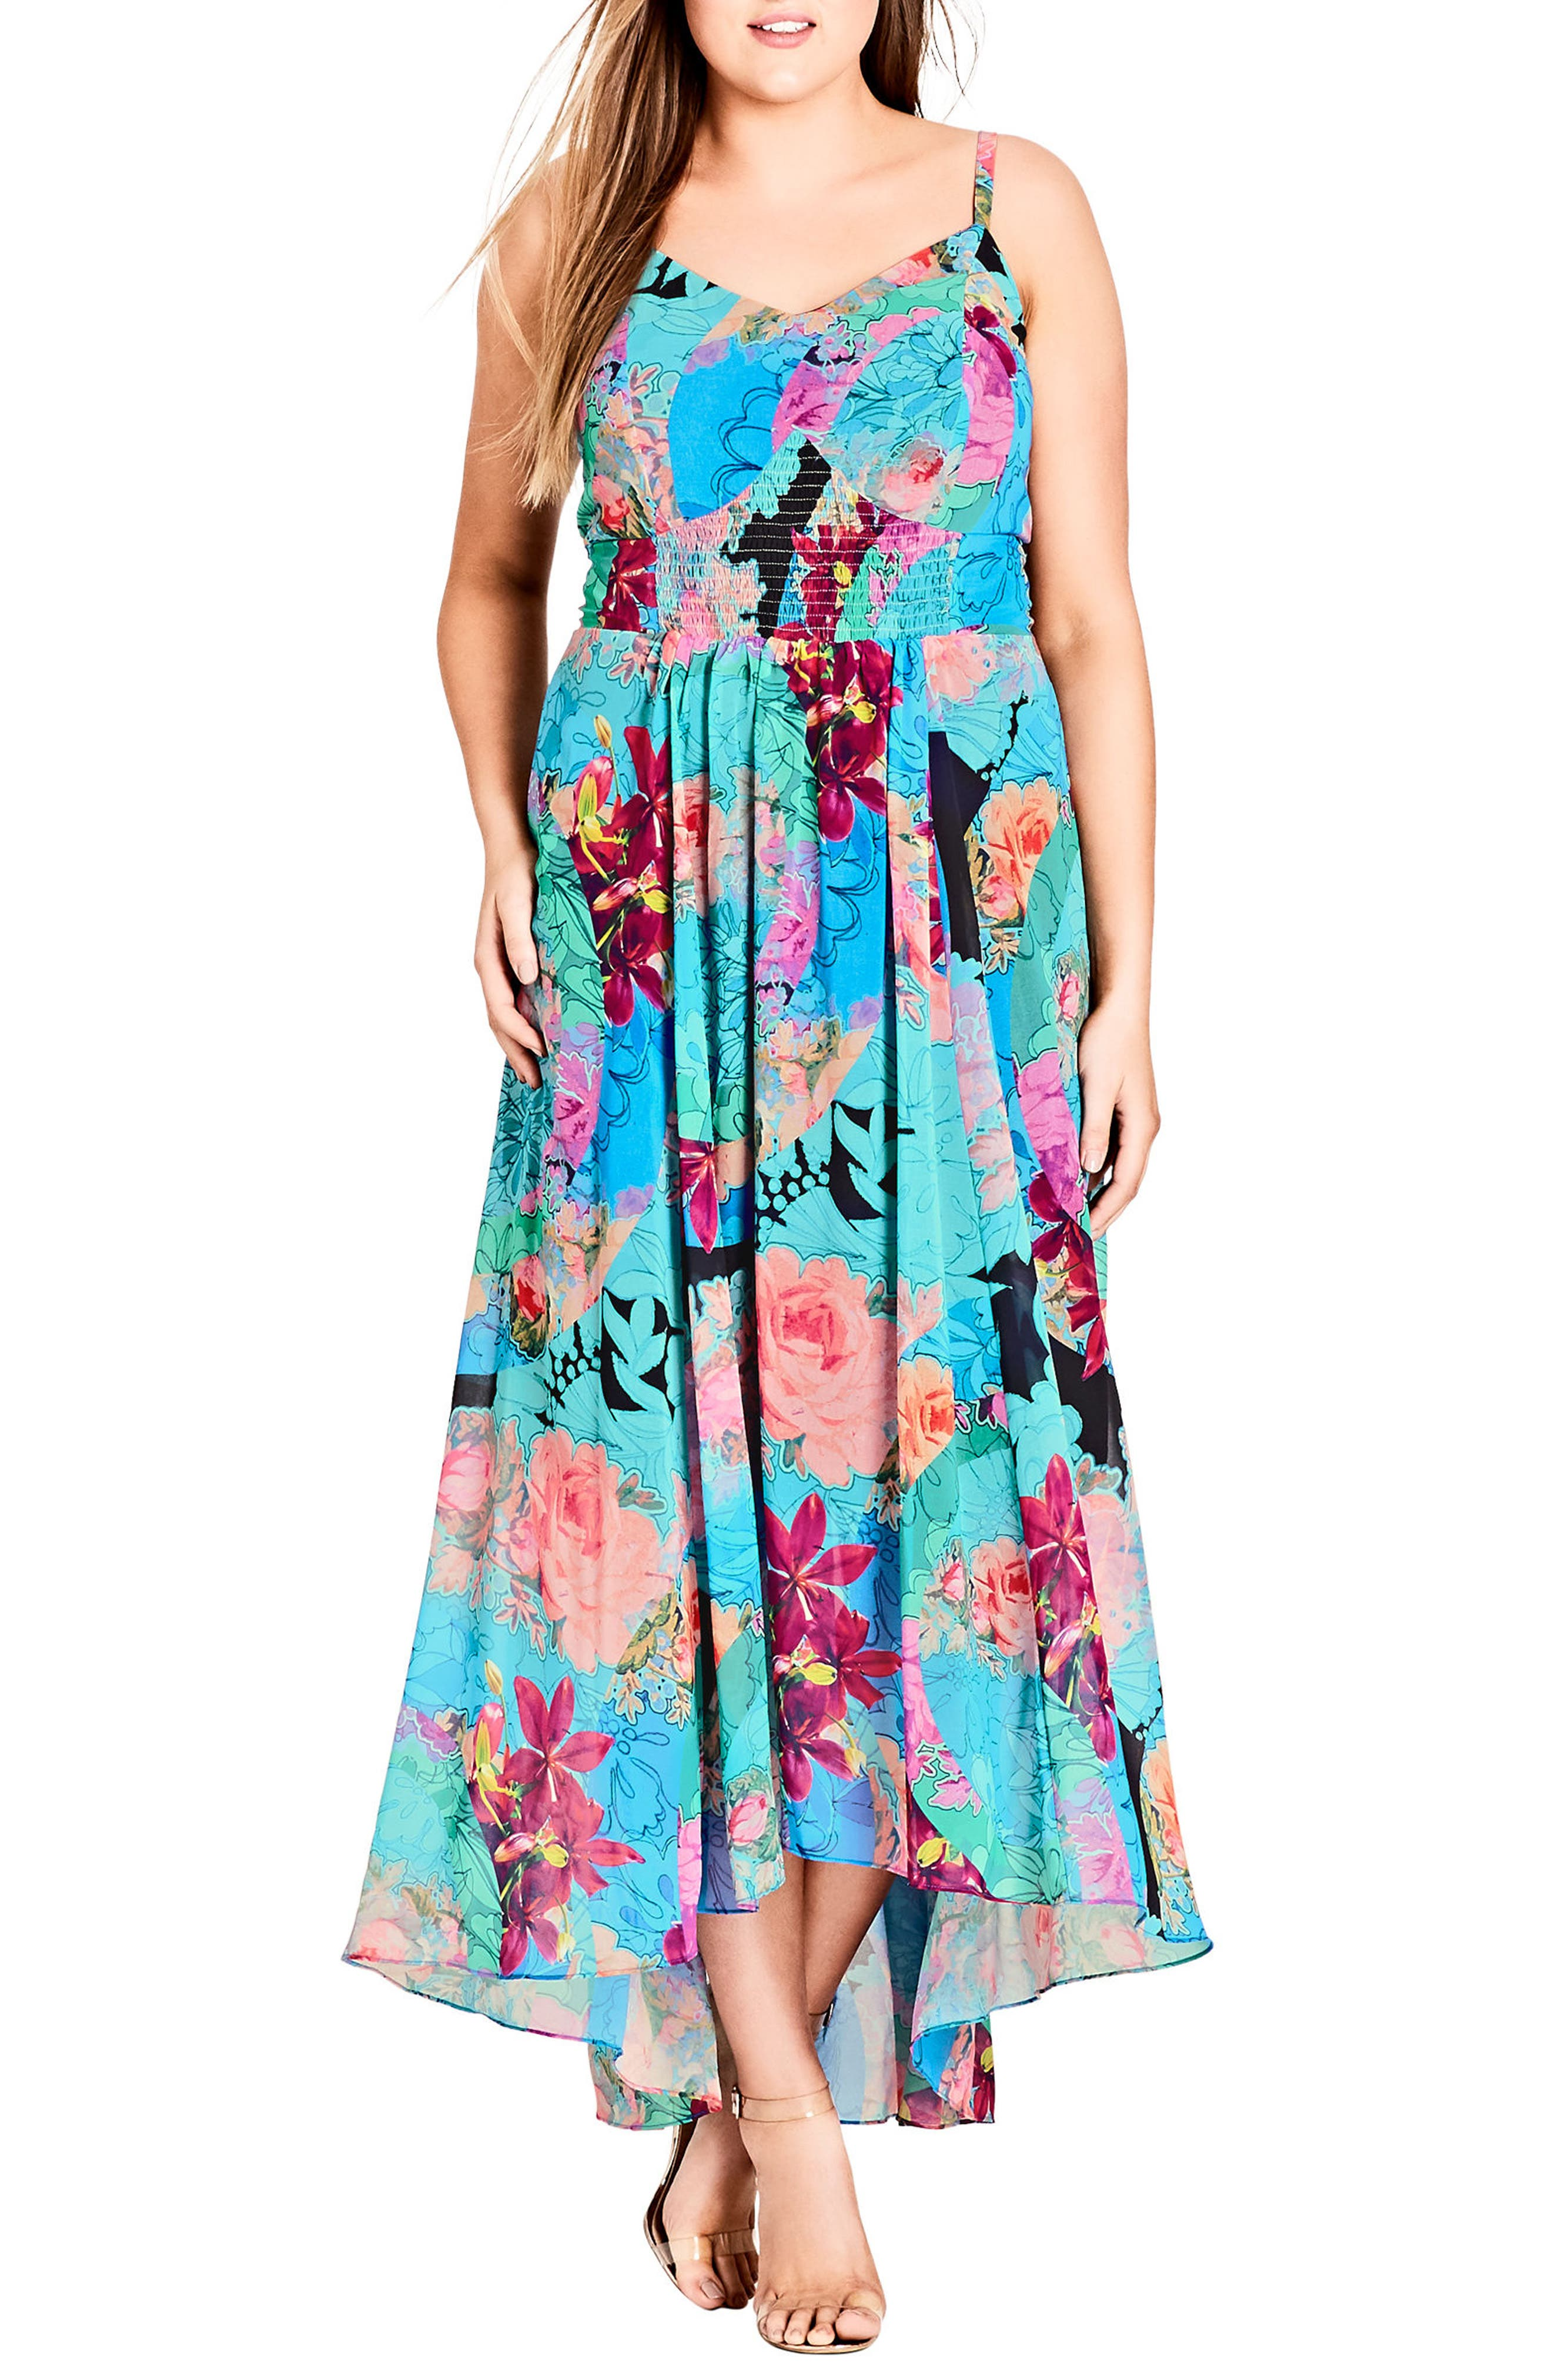 Looking Glass Maxi Dress,                         Main,                         color, LOOKING GLASS